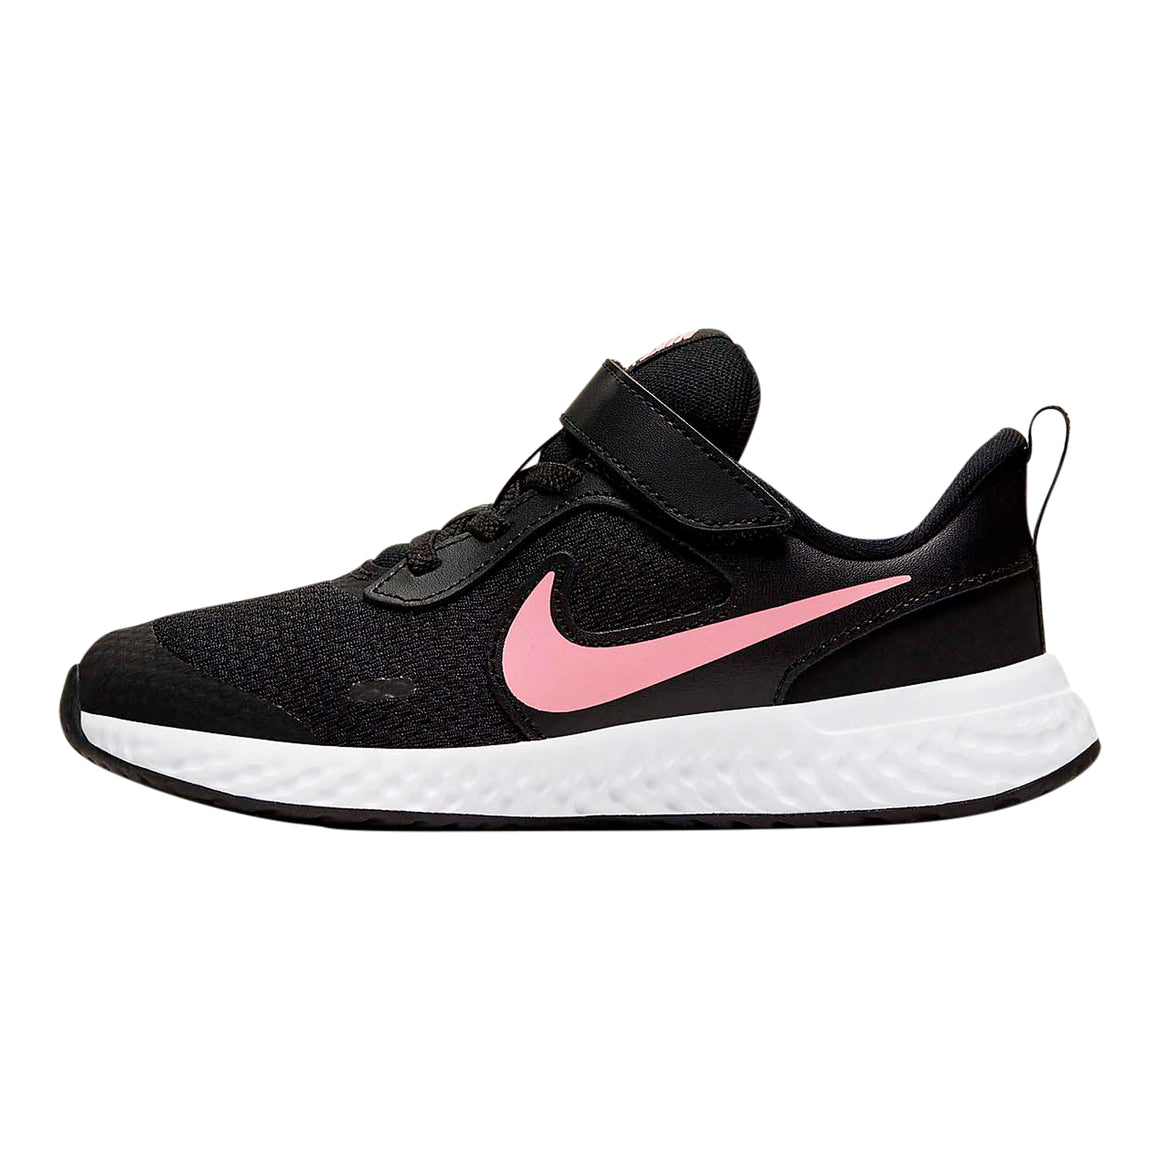 Revolution 5 Running Shoes for Younger Kids in Black/Sunset Pulse